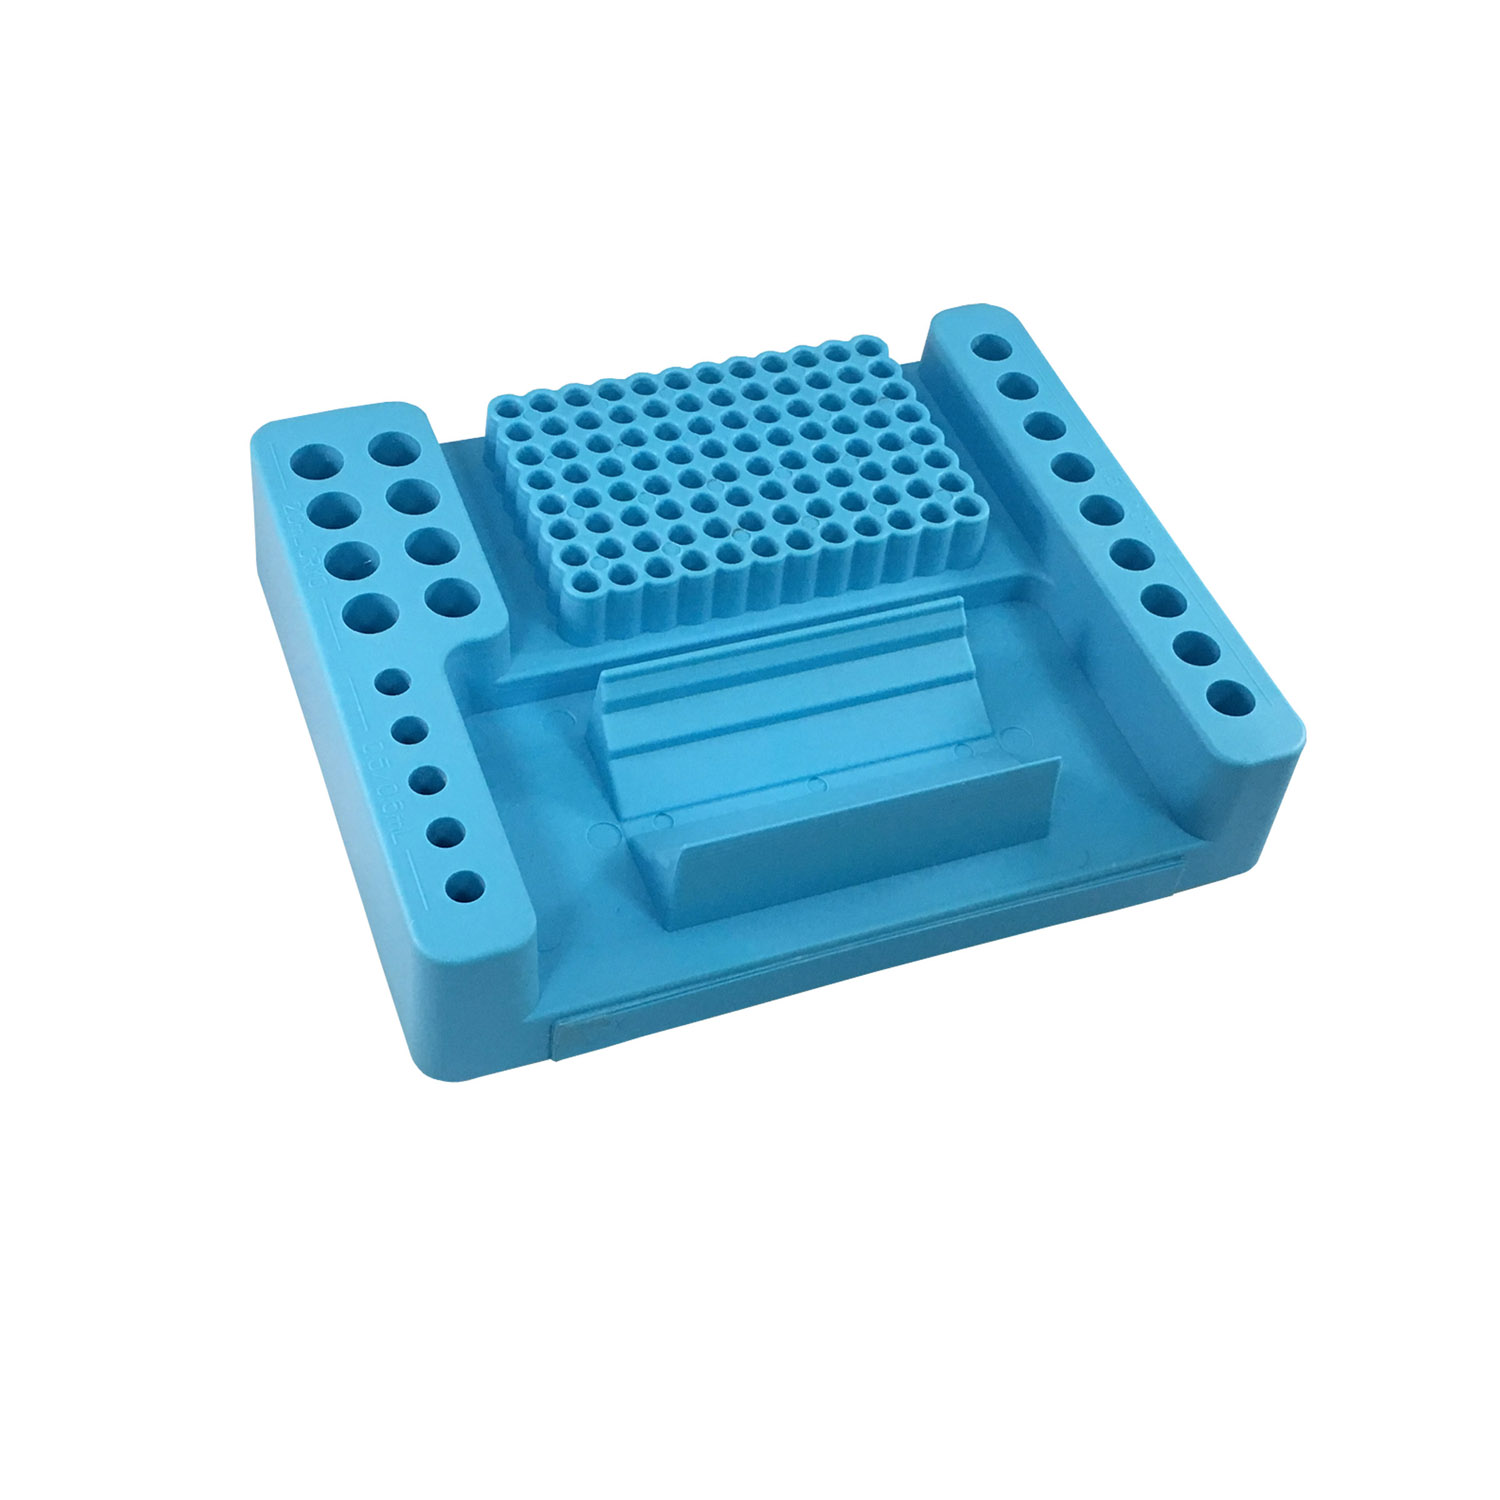 COOL CADDY COLD STATION FOR PCR PLATE/TUBES/CRYOS